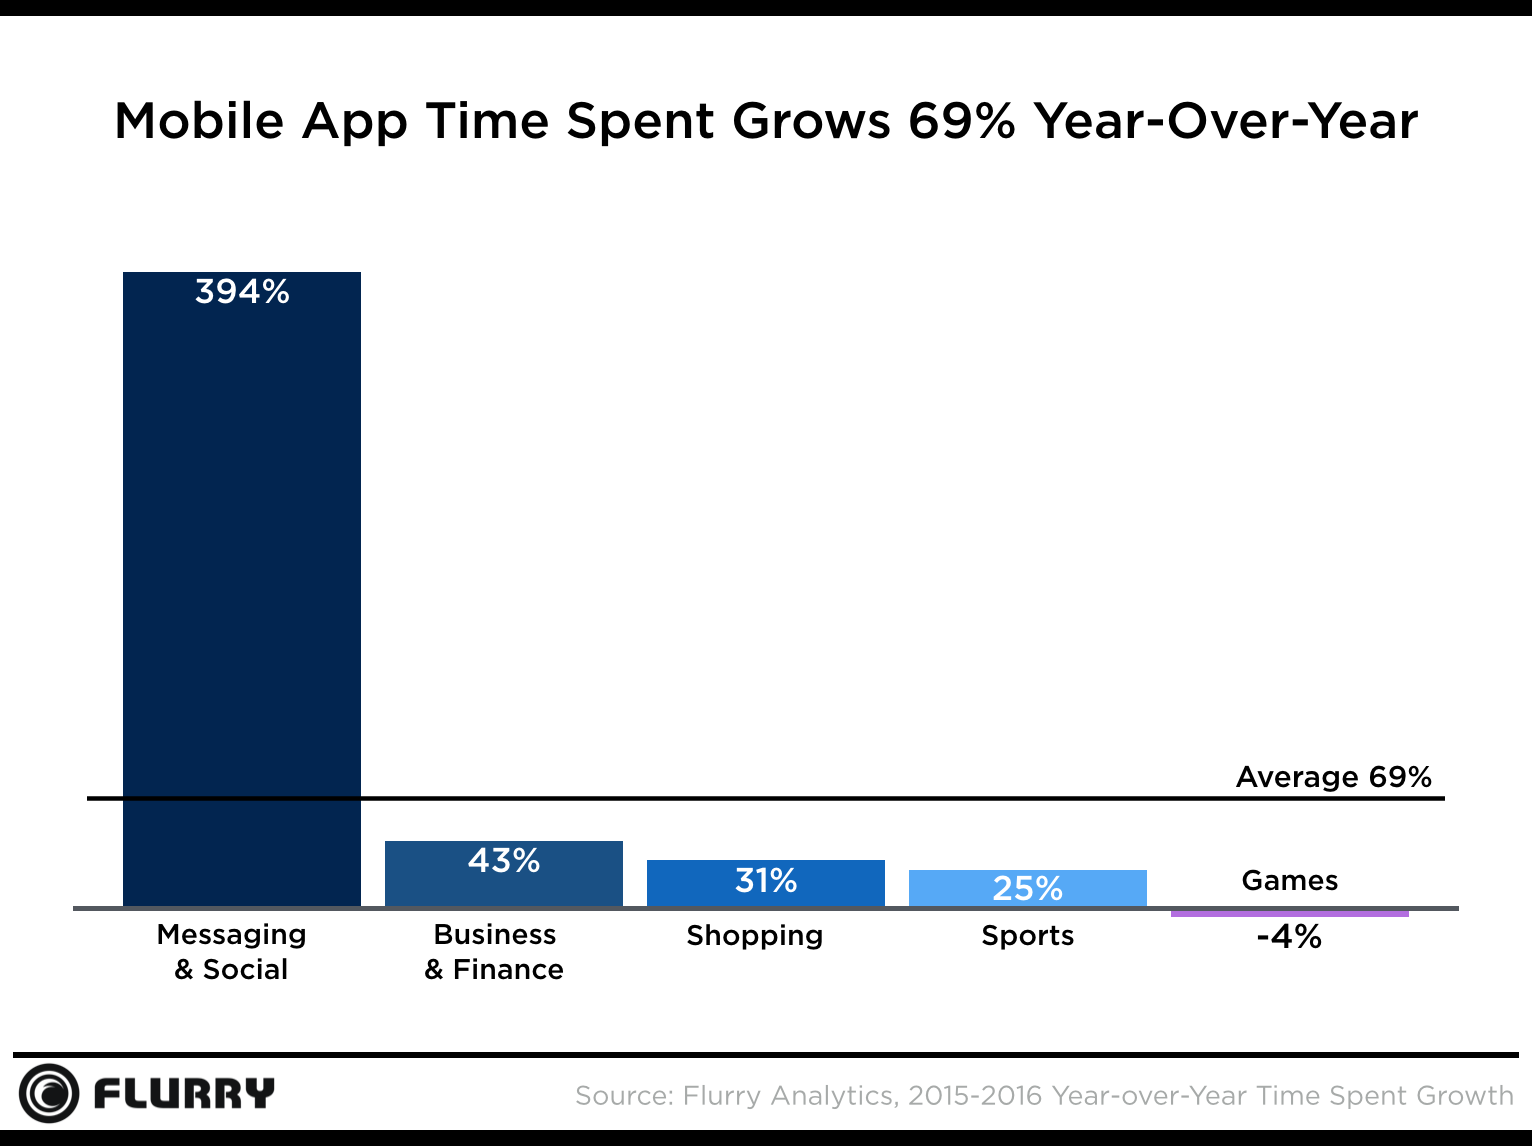 Messaging and Social apps outperformed other app categories by a huge margin